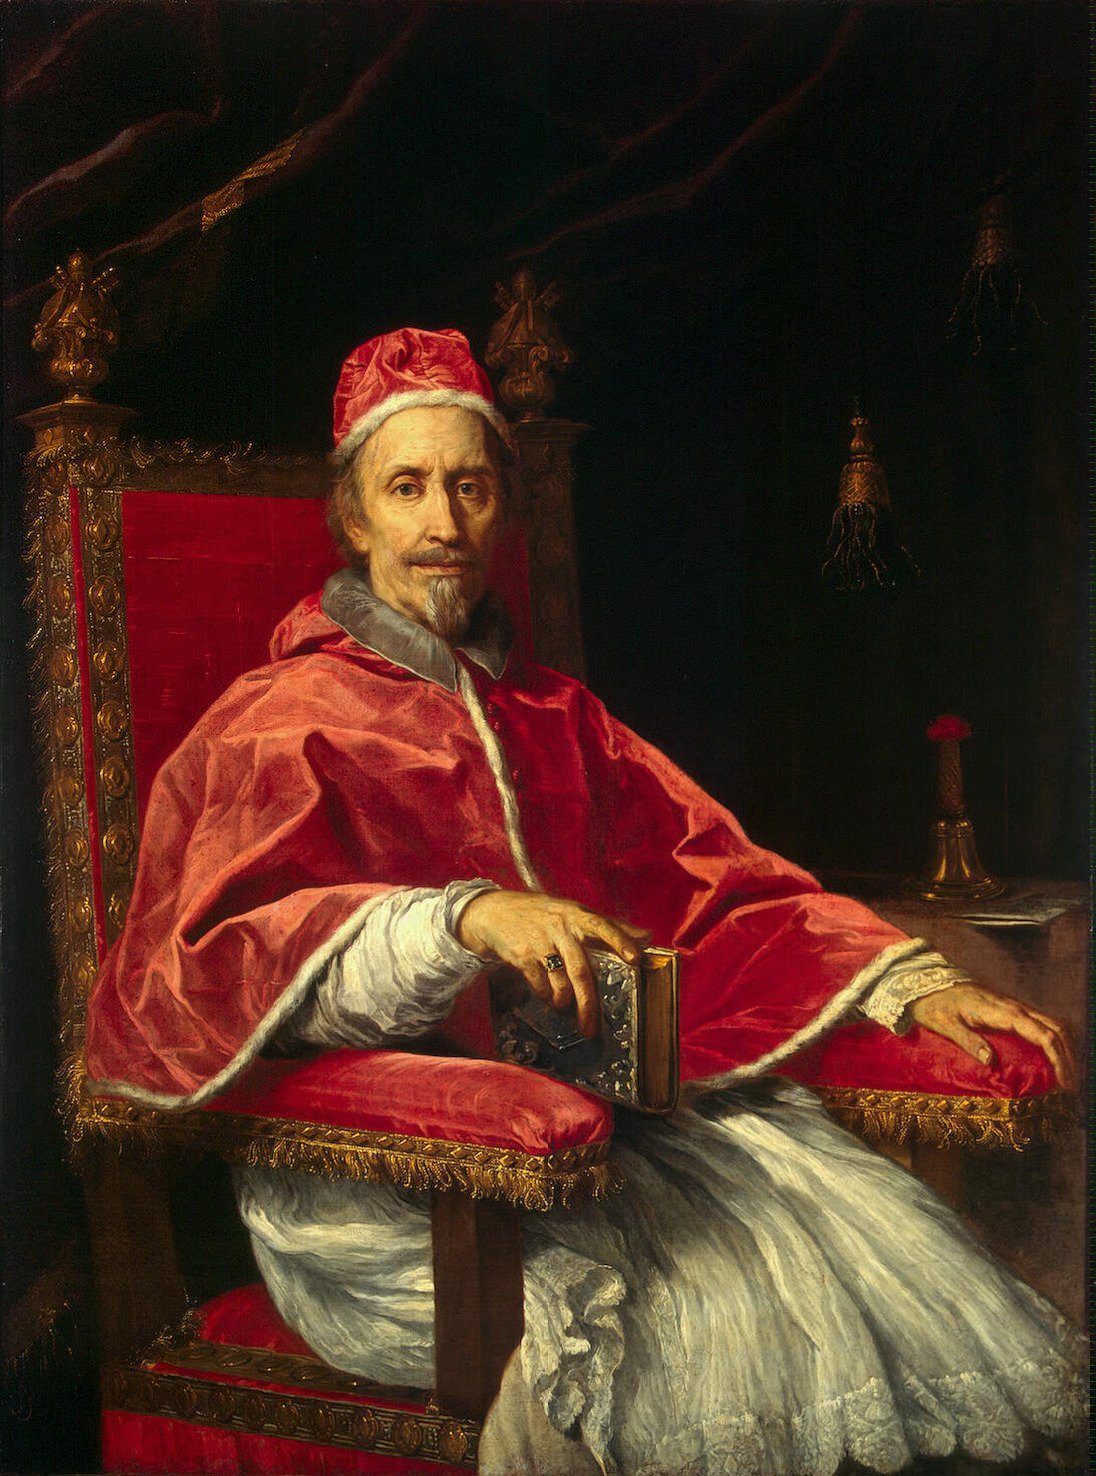 Pope Clement IX by Carlo Maratta, 1669